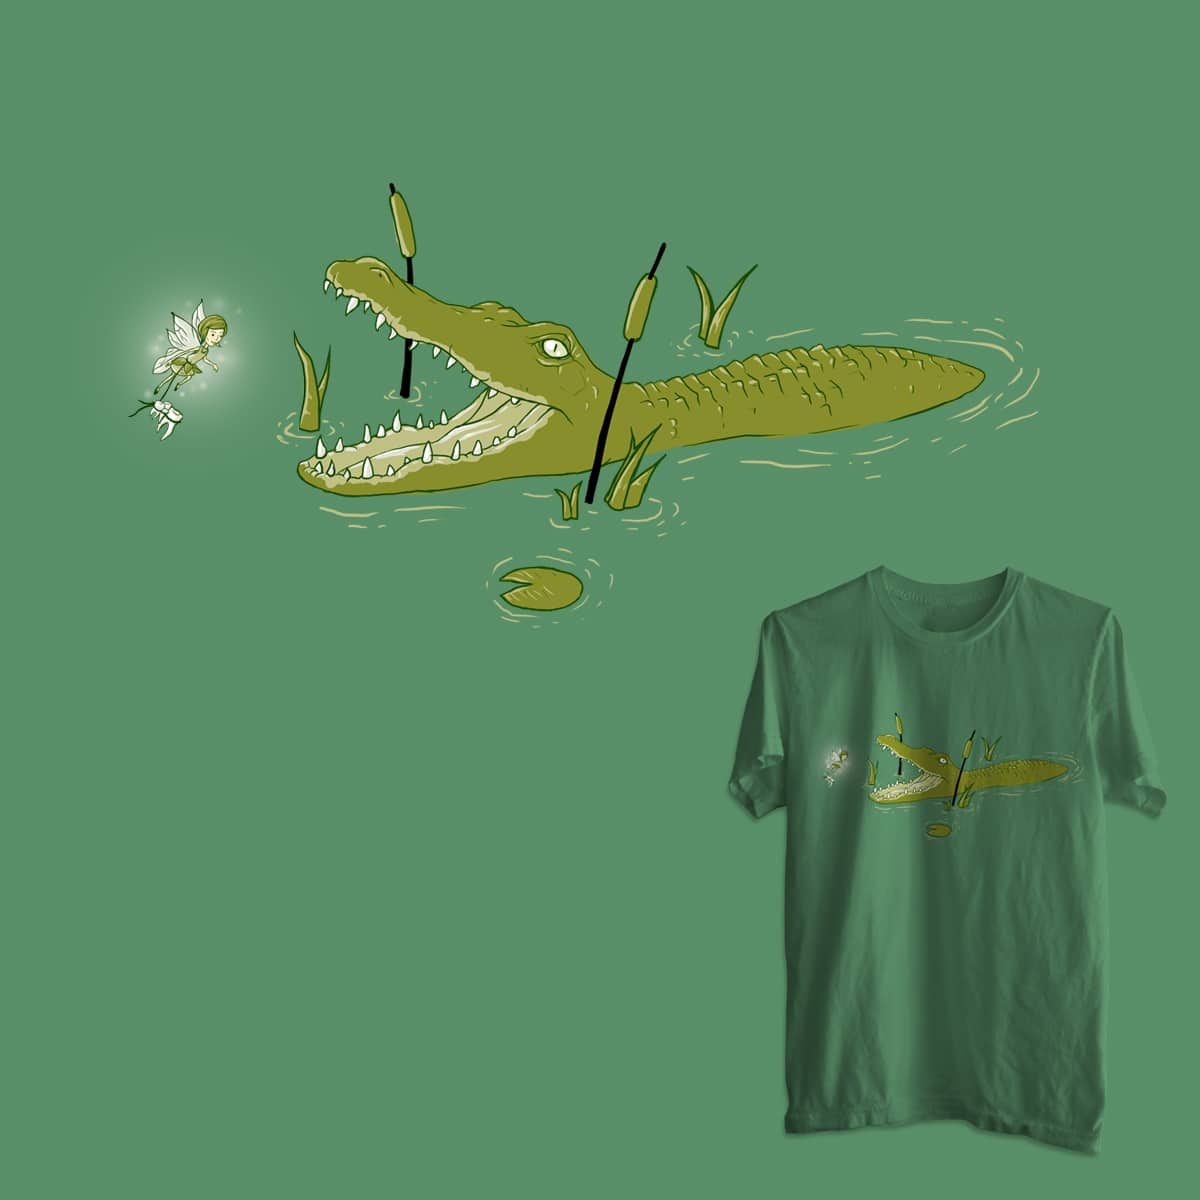 Gator Snack by Milan_ and goliath72 on Threadless